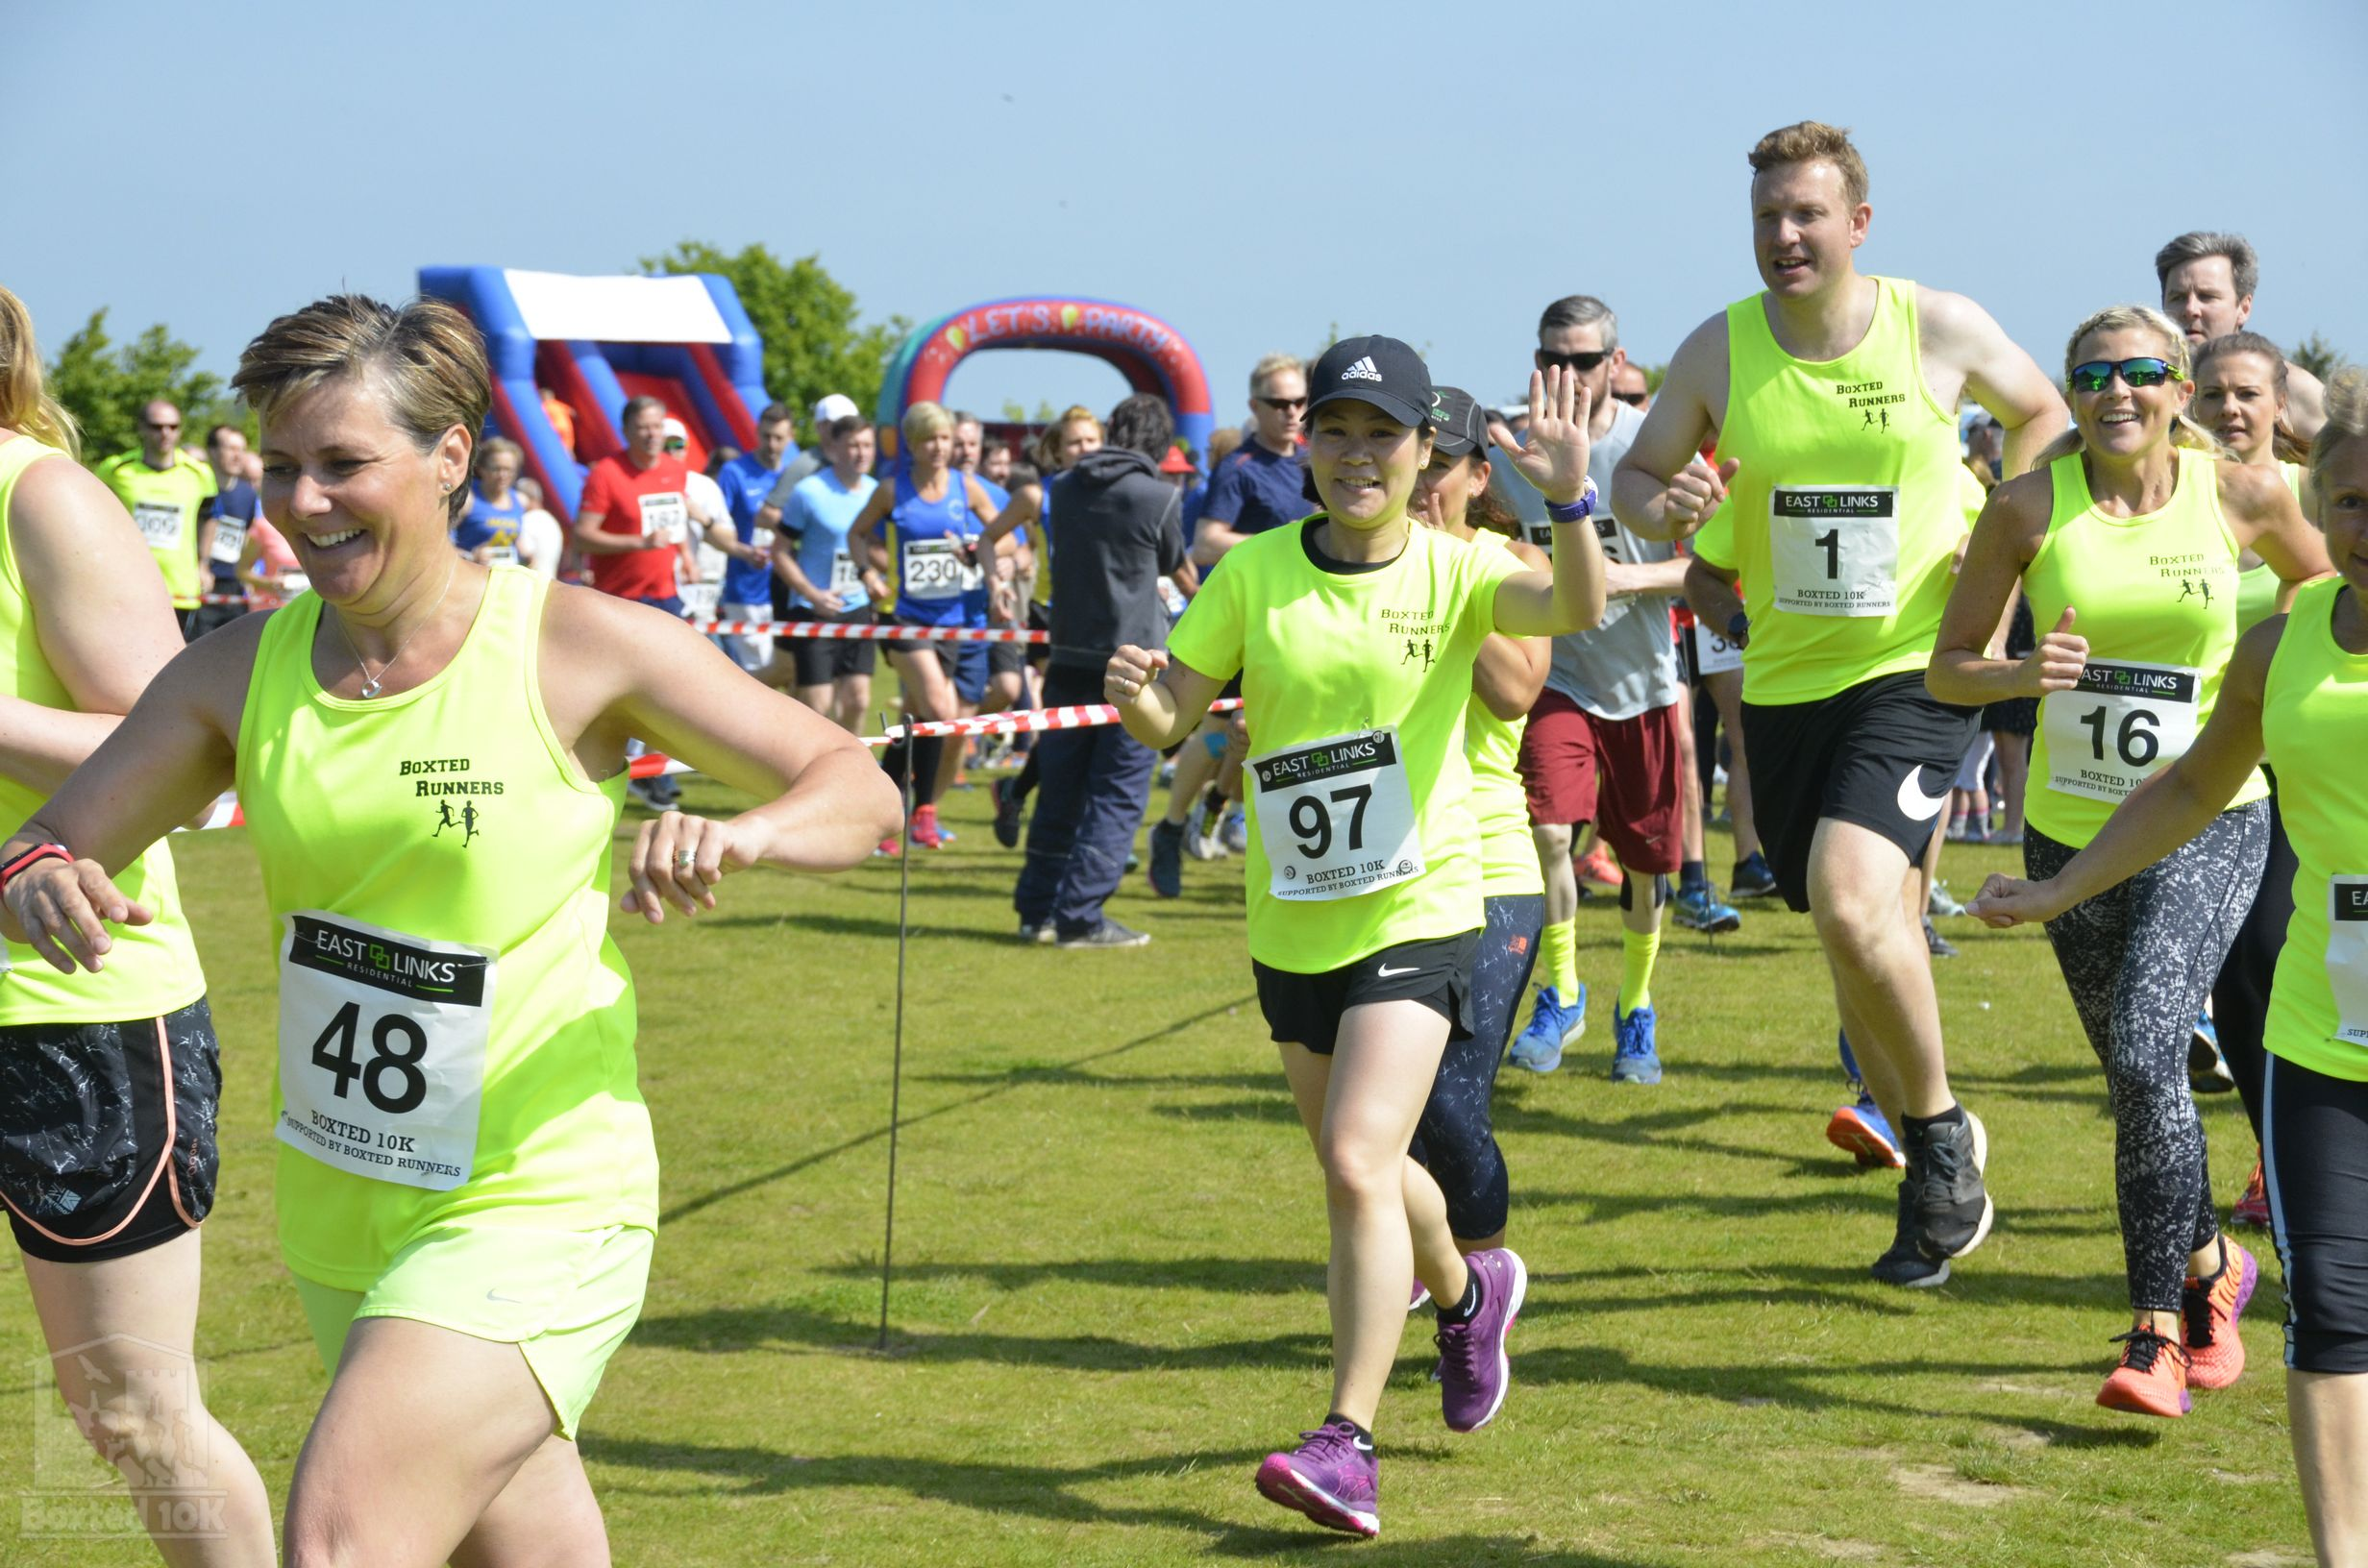 Boxted10k-00056